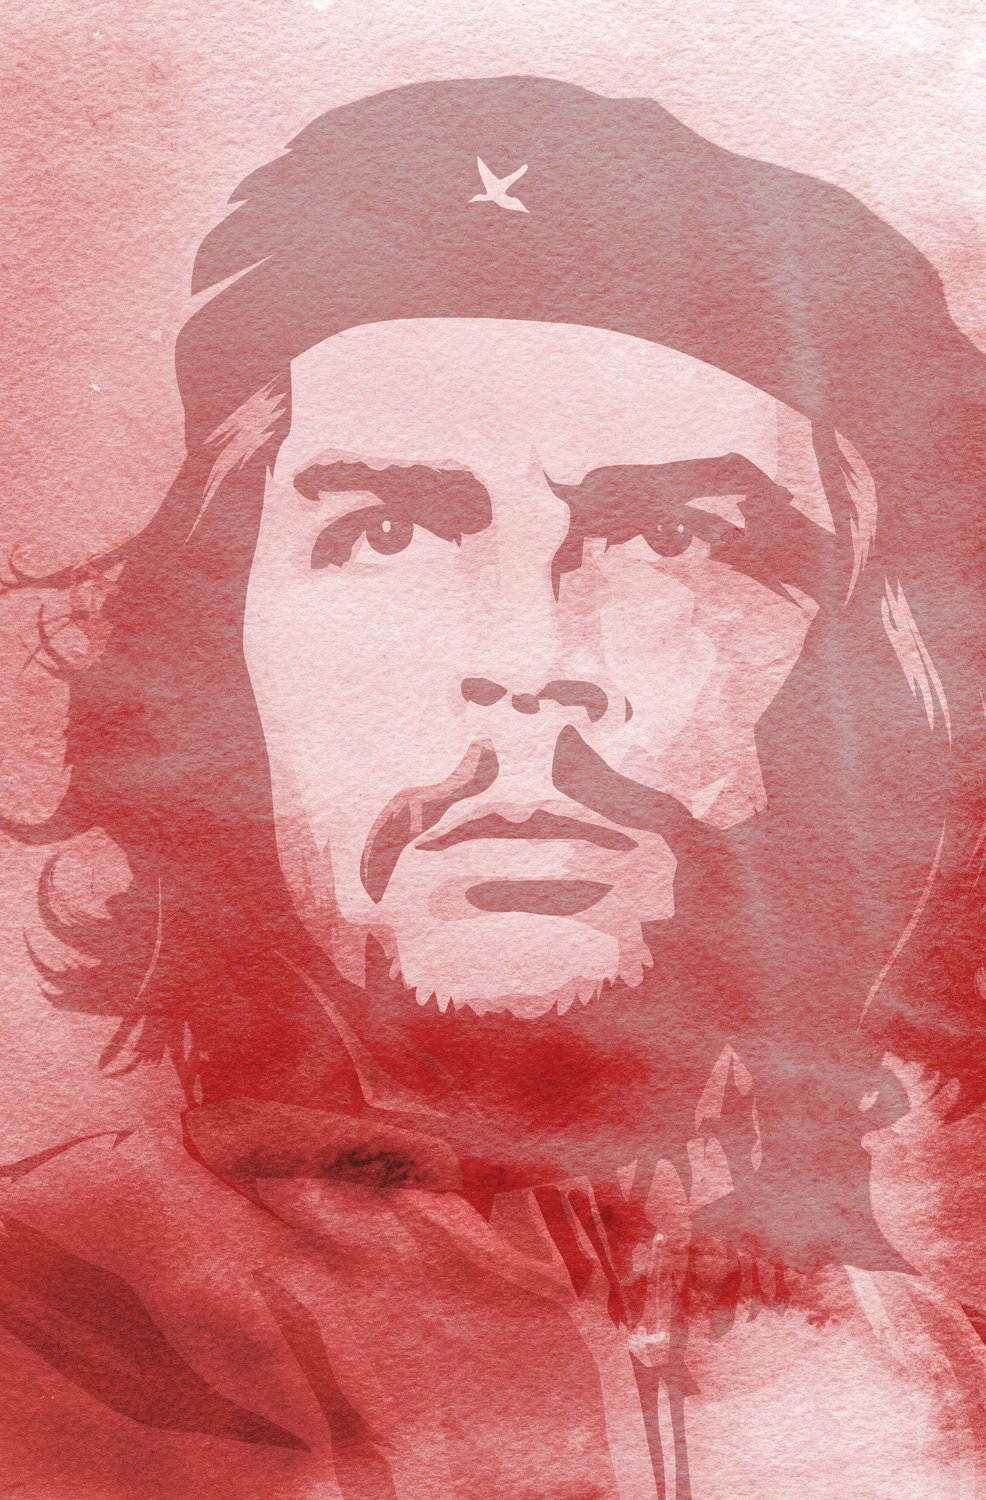 JP London Mural Che Guevara Revolution at 2 Wide by 3 feet high SPMUR2223 Fully Removable Peel and Stick Wall Art